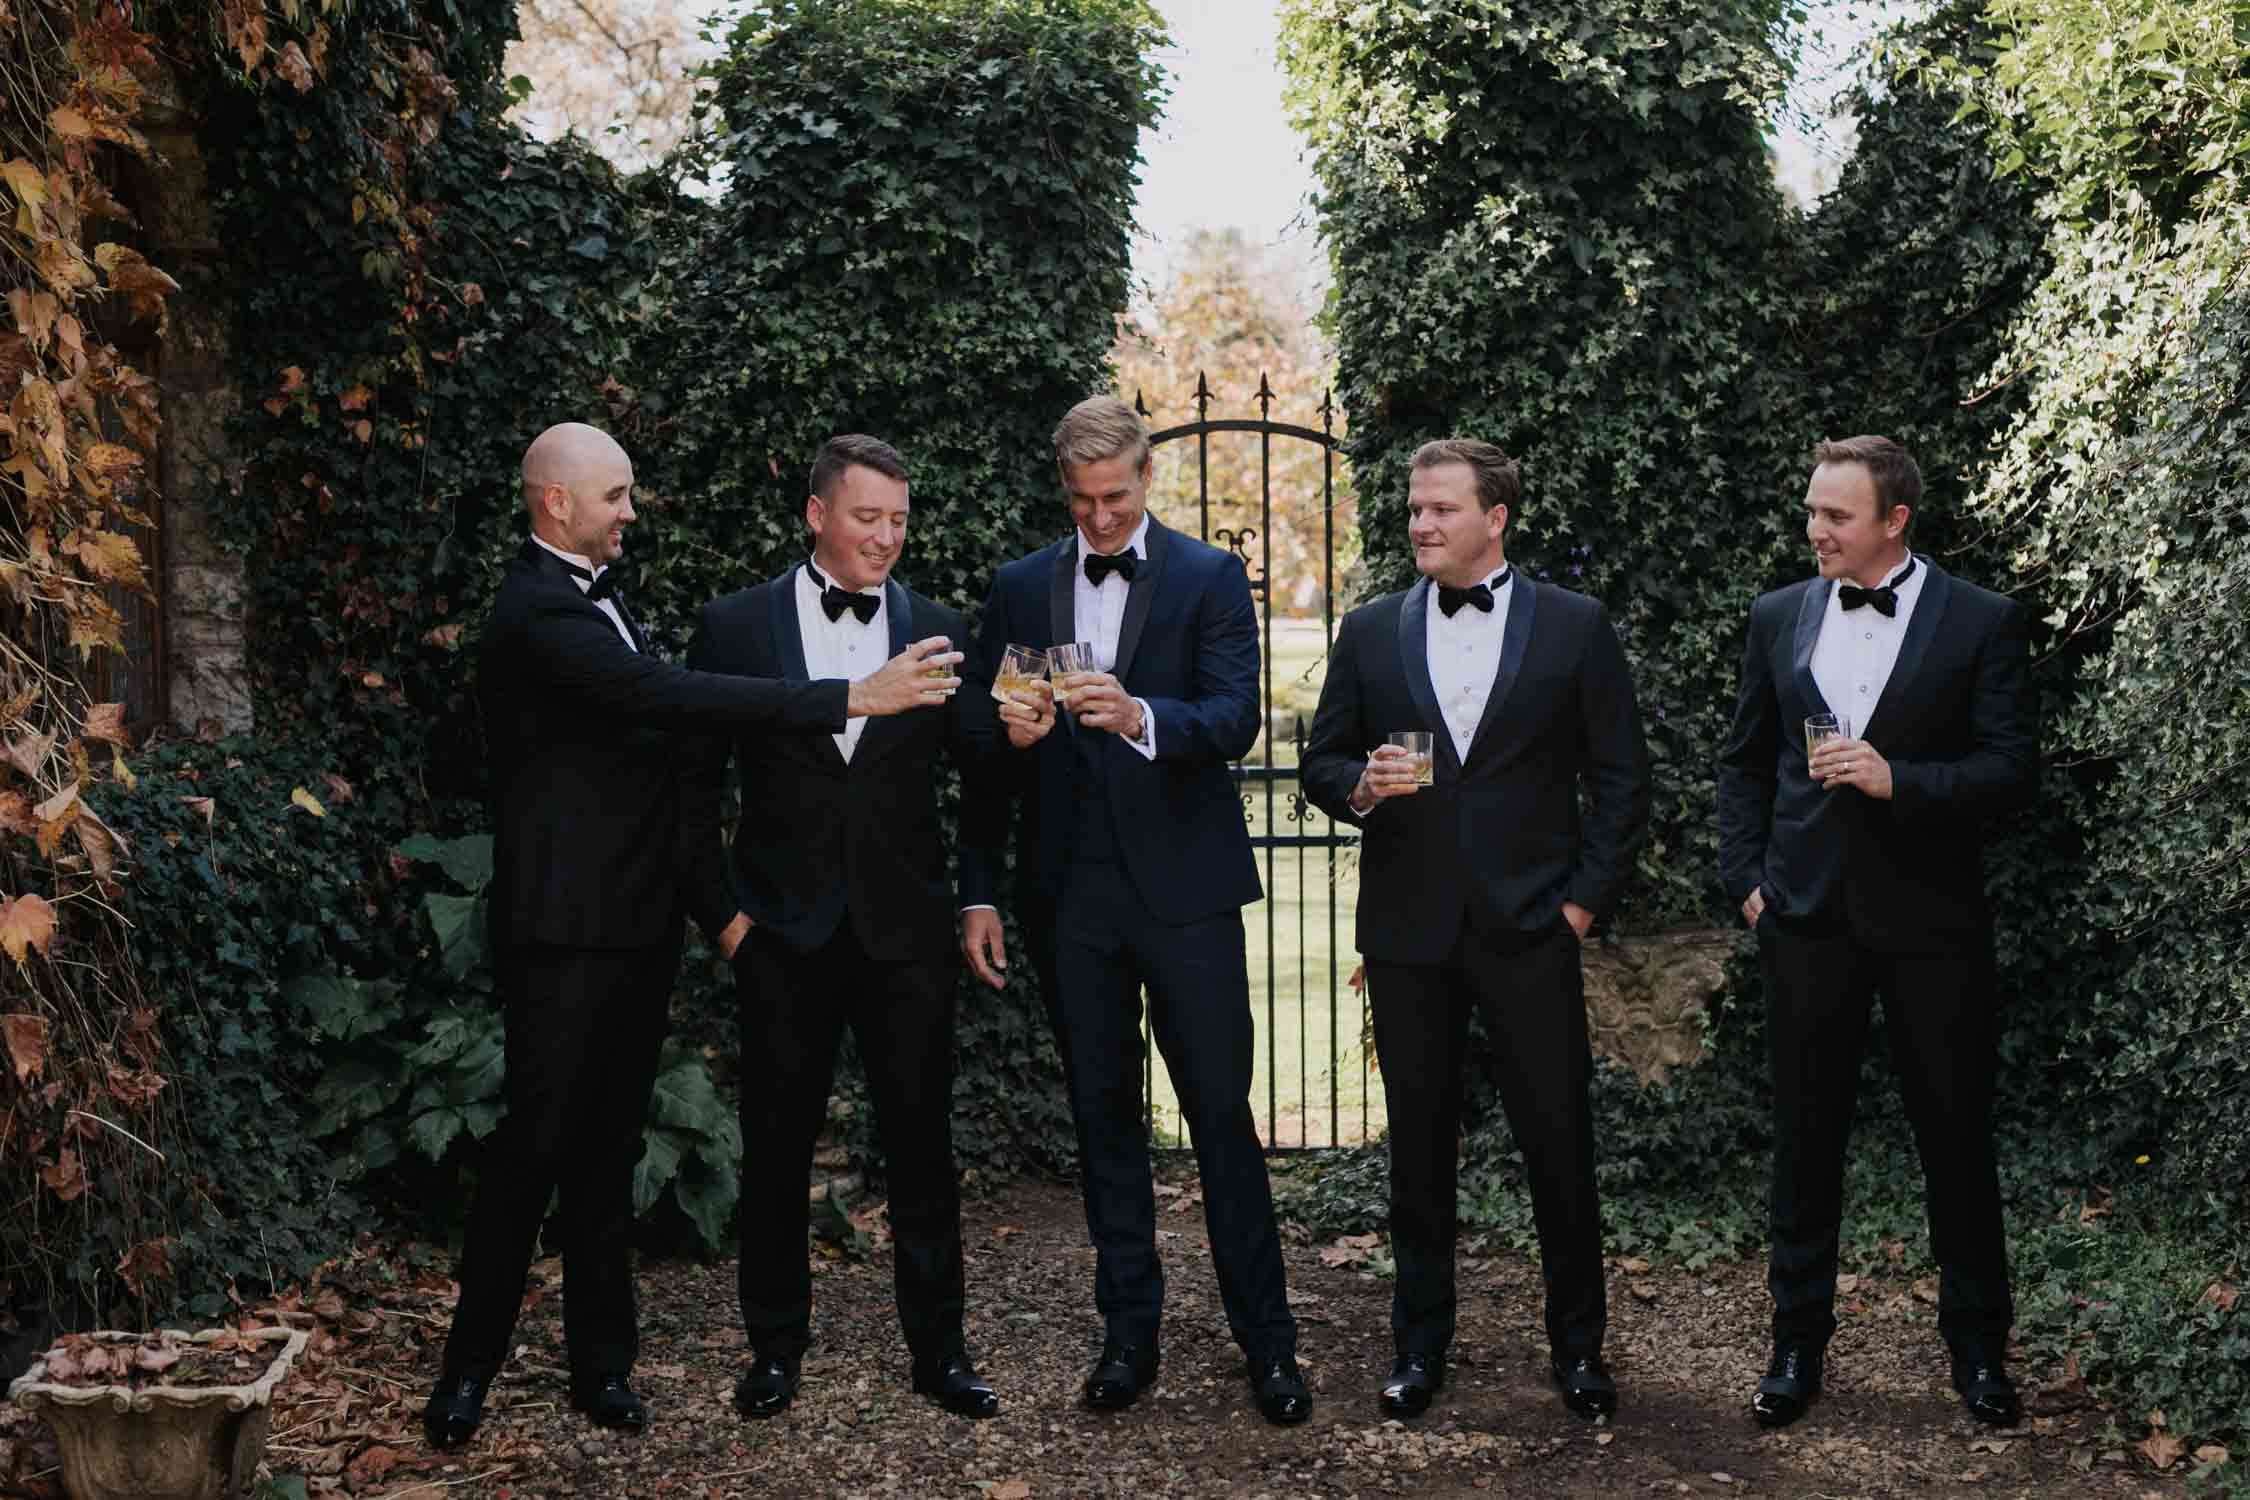 Groom standing with his groomsmen before his wedding ceremony laughing and having a drink of whiskey